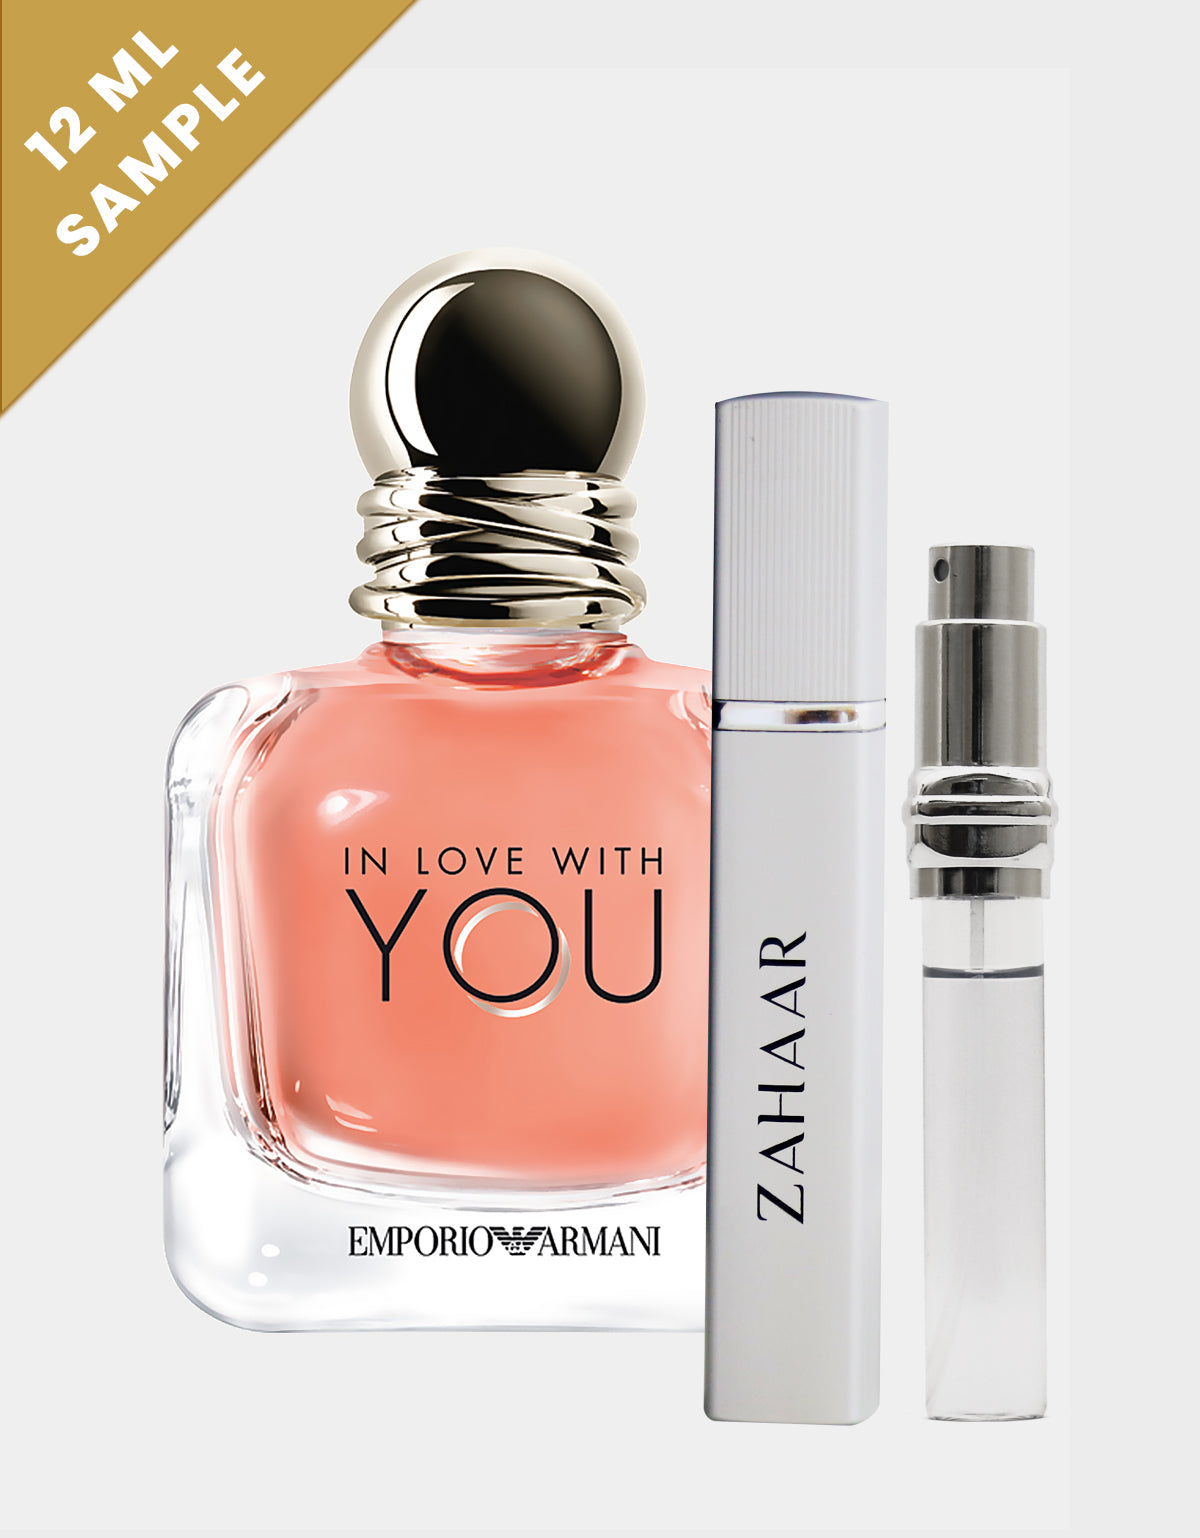 Emporio Armani In Love With You Pour Femme - 12ml Travel Spray